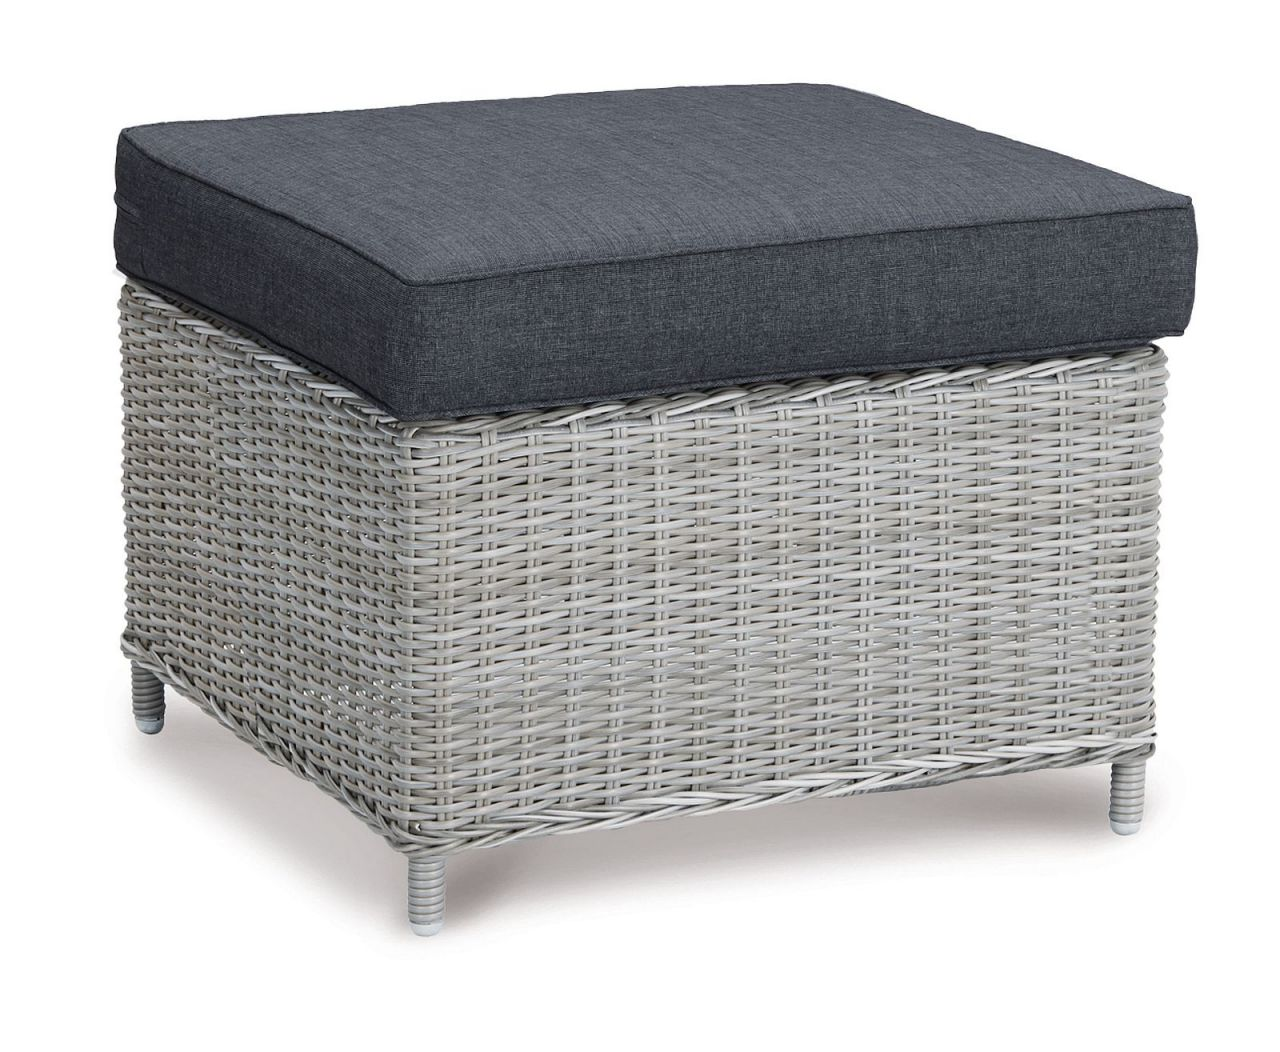 Hocker Outdoor Hocker Outdoor Fußhocker Inkl Polster Rattan Grau Meliert